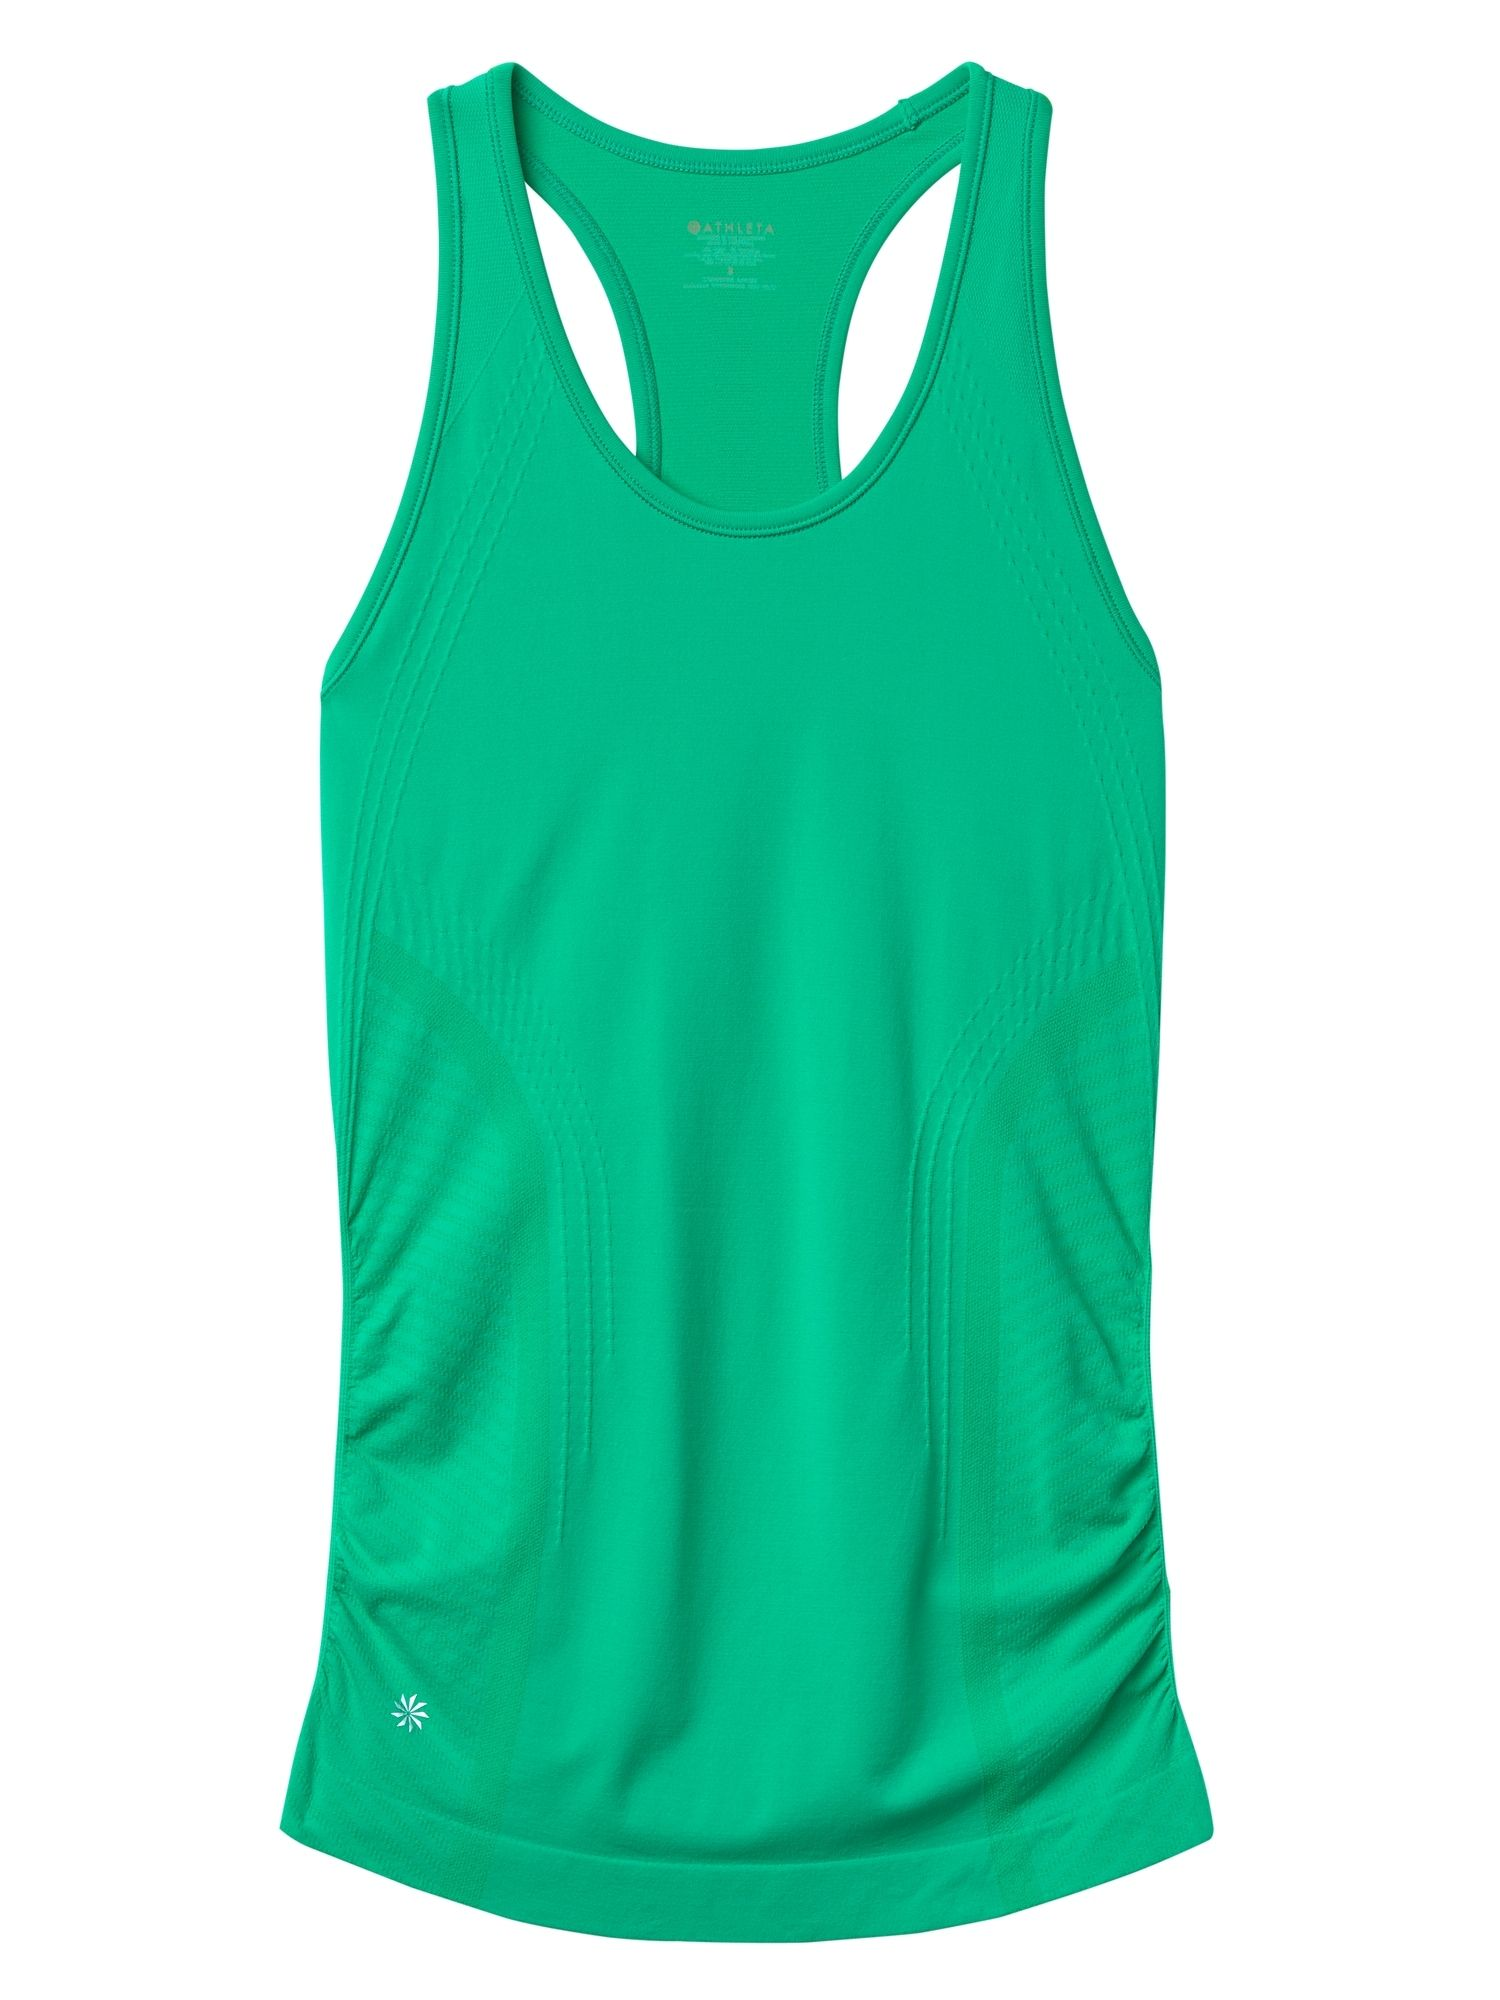 Speedlight Tank Athletic tank tops, Clothes, Gym suit